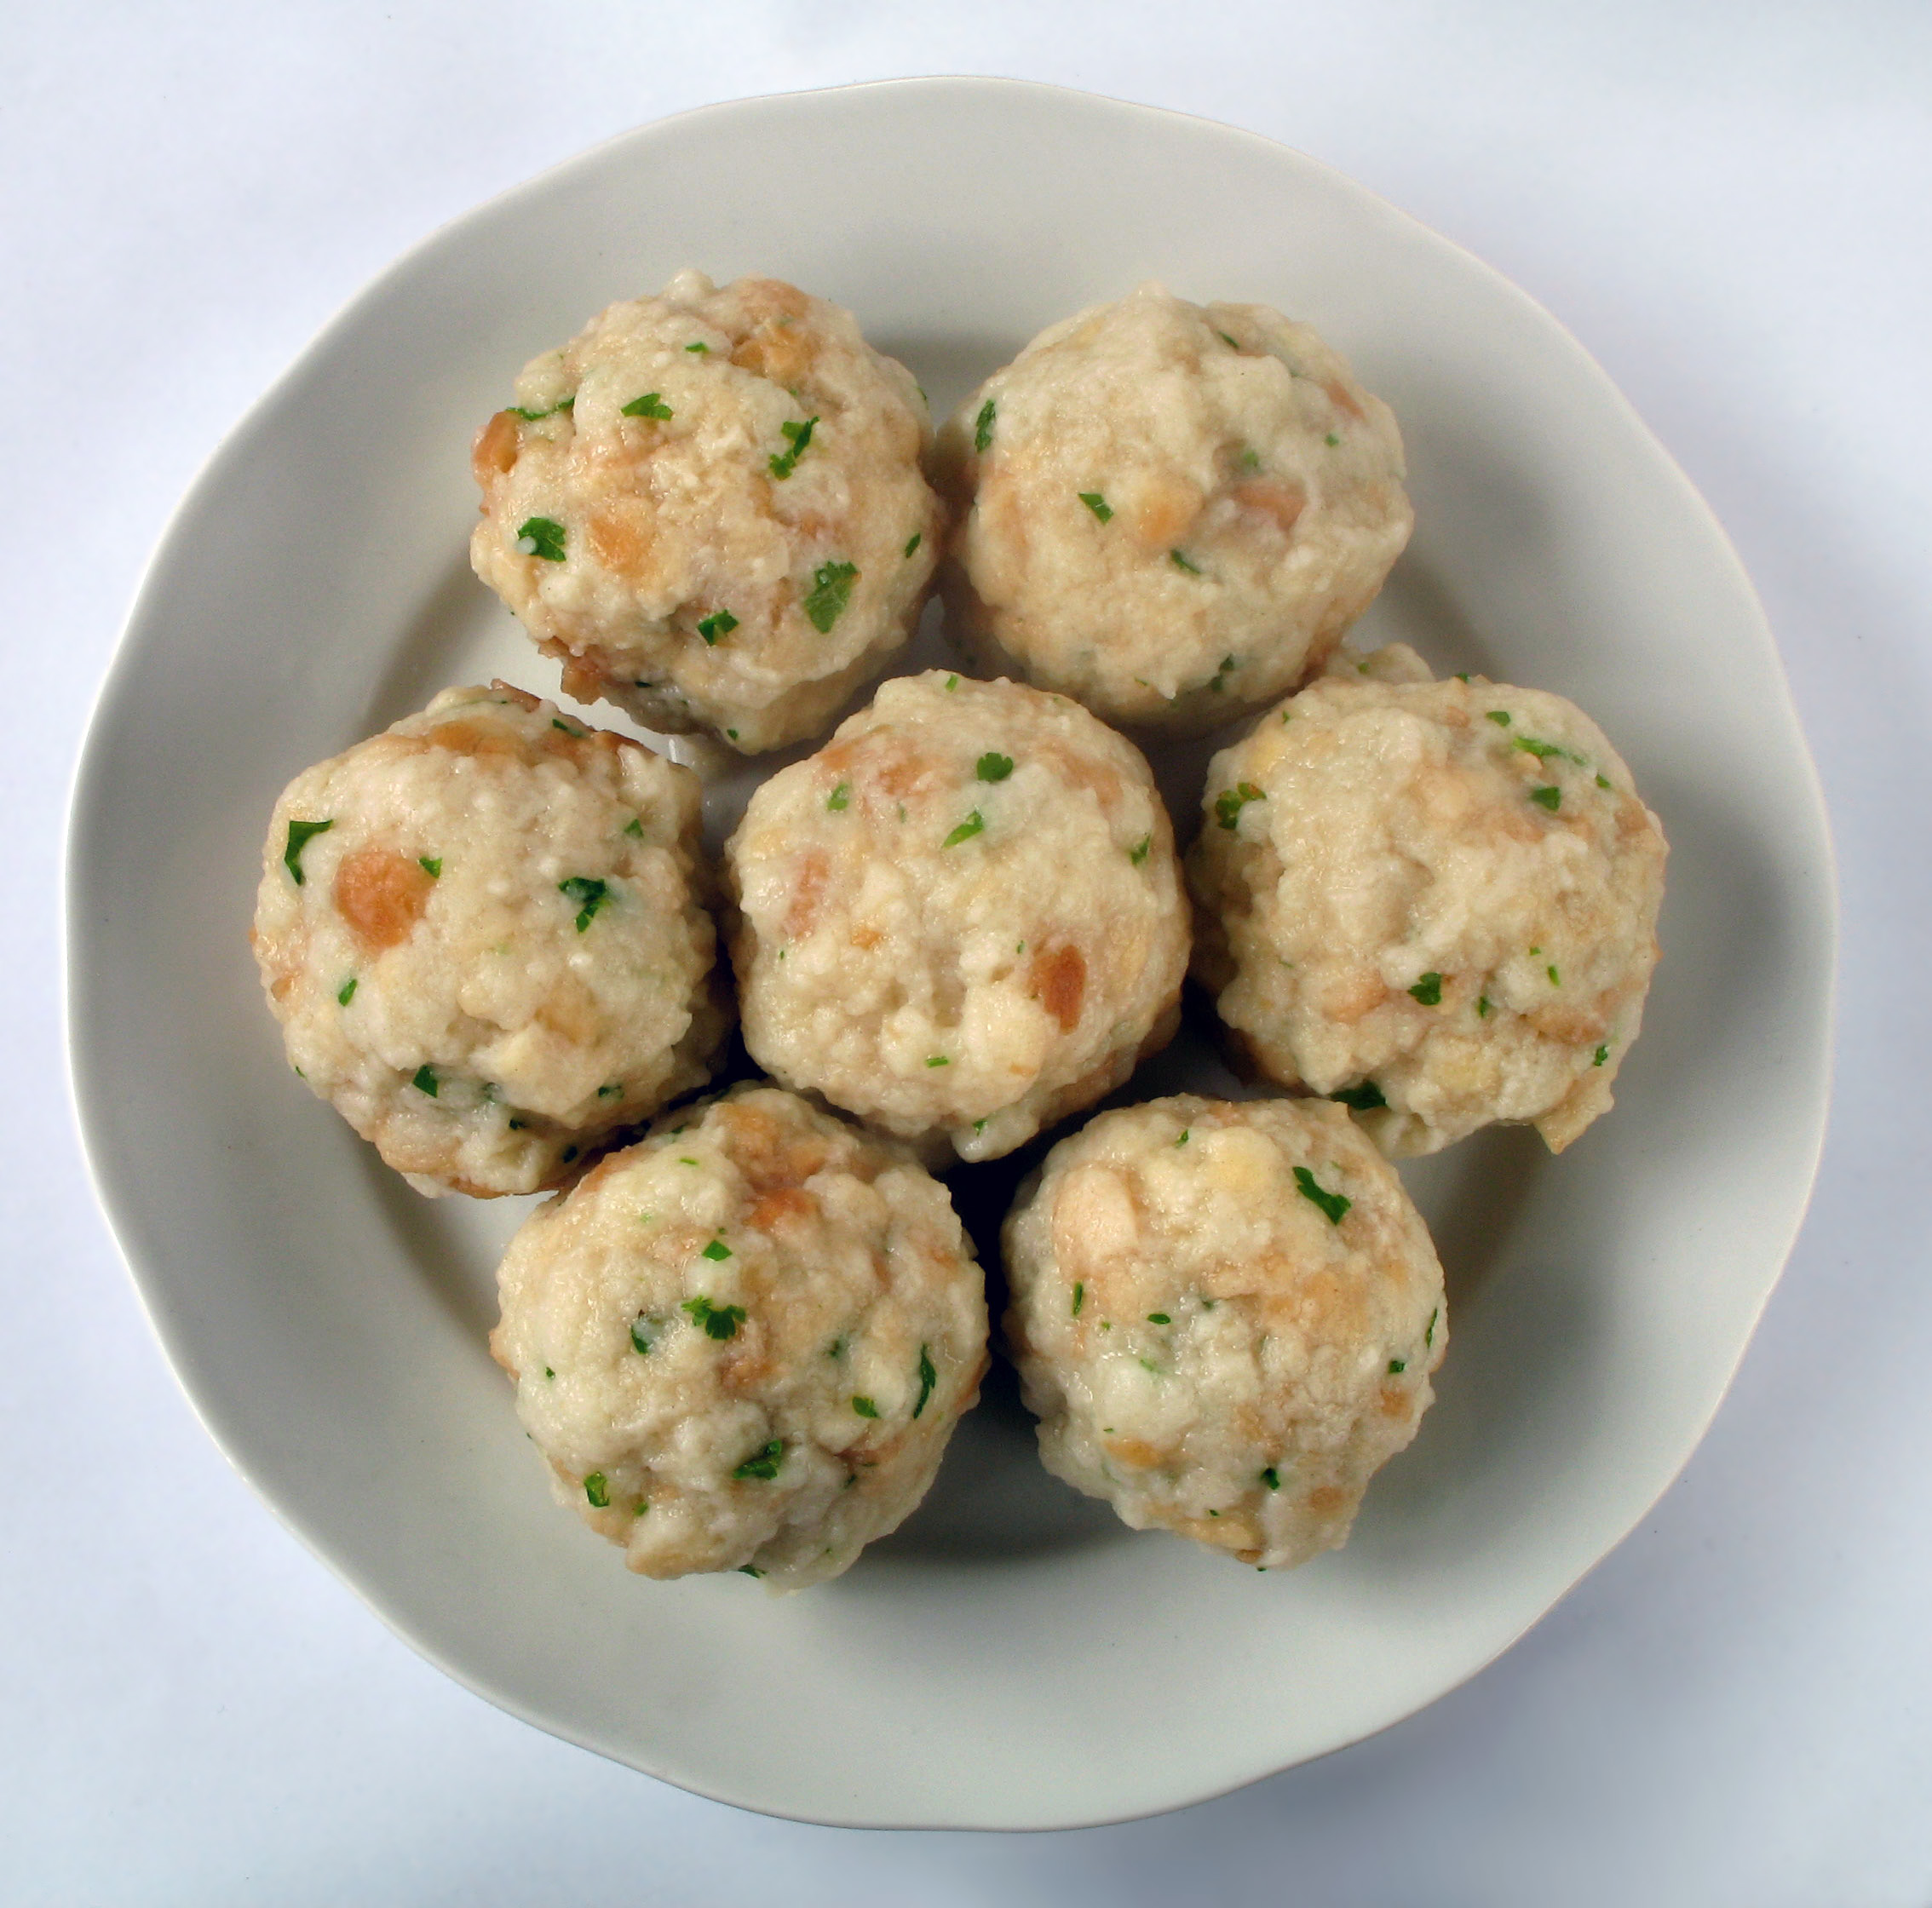 file:semmelknödel - wikimedia commons